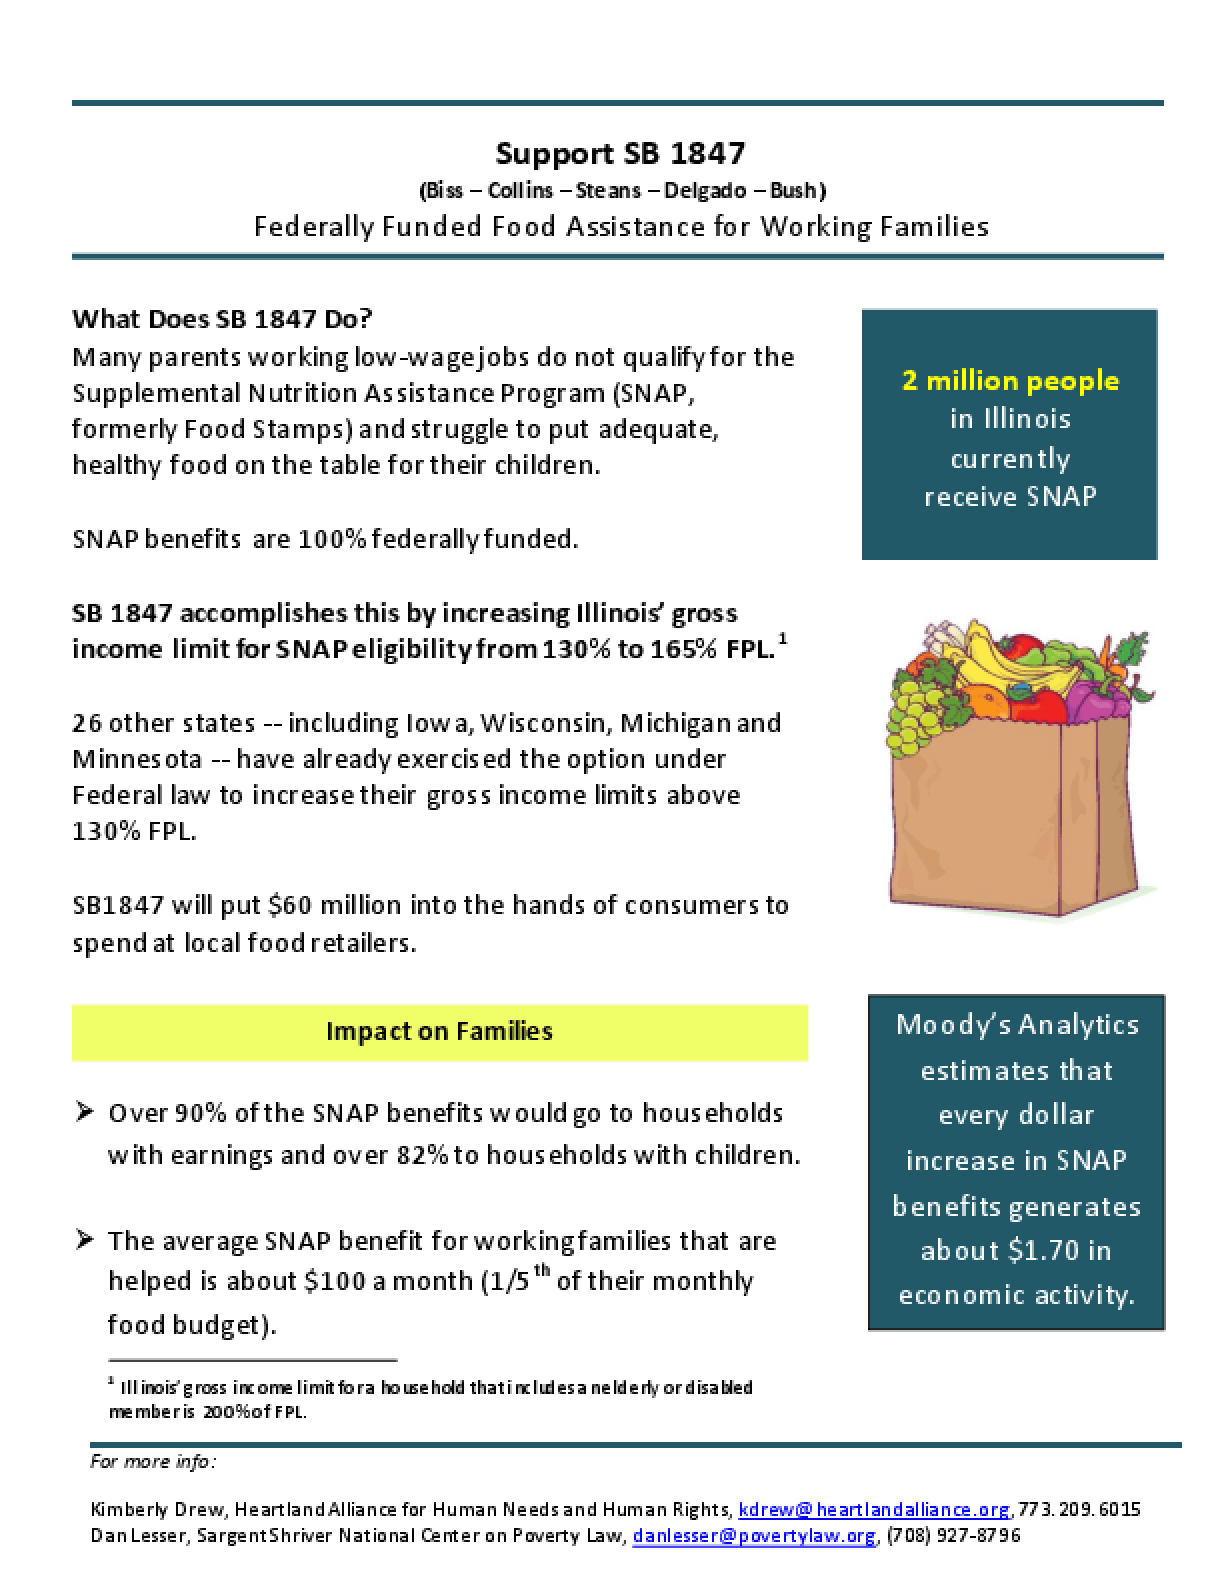 Support SB 1847 Fact Sheet